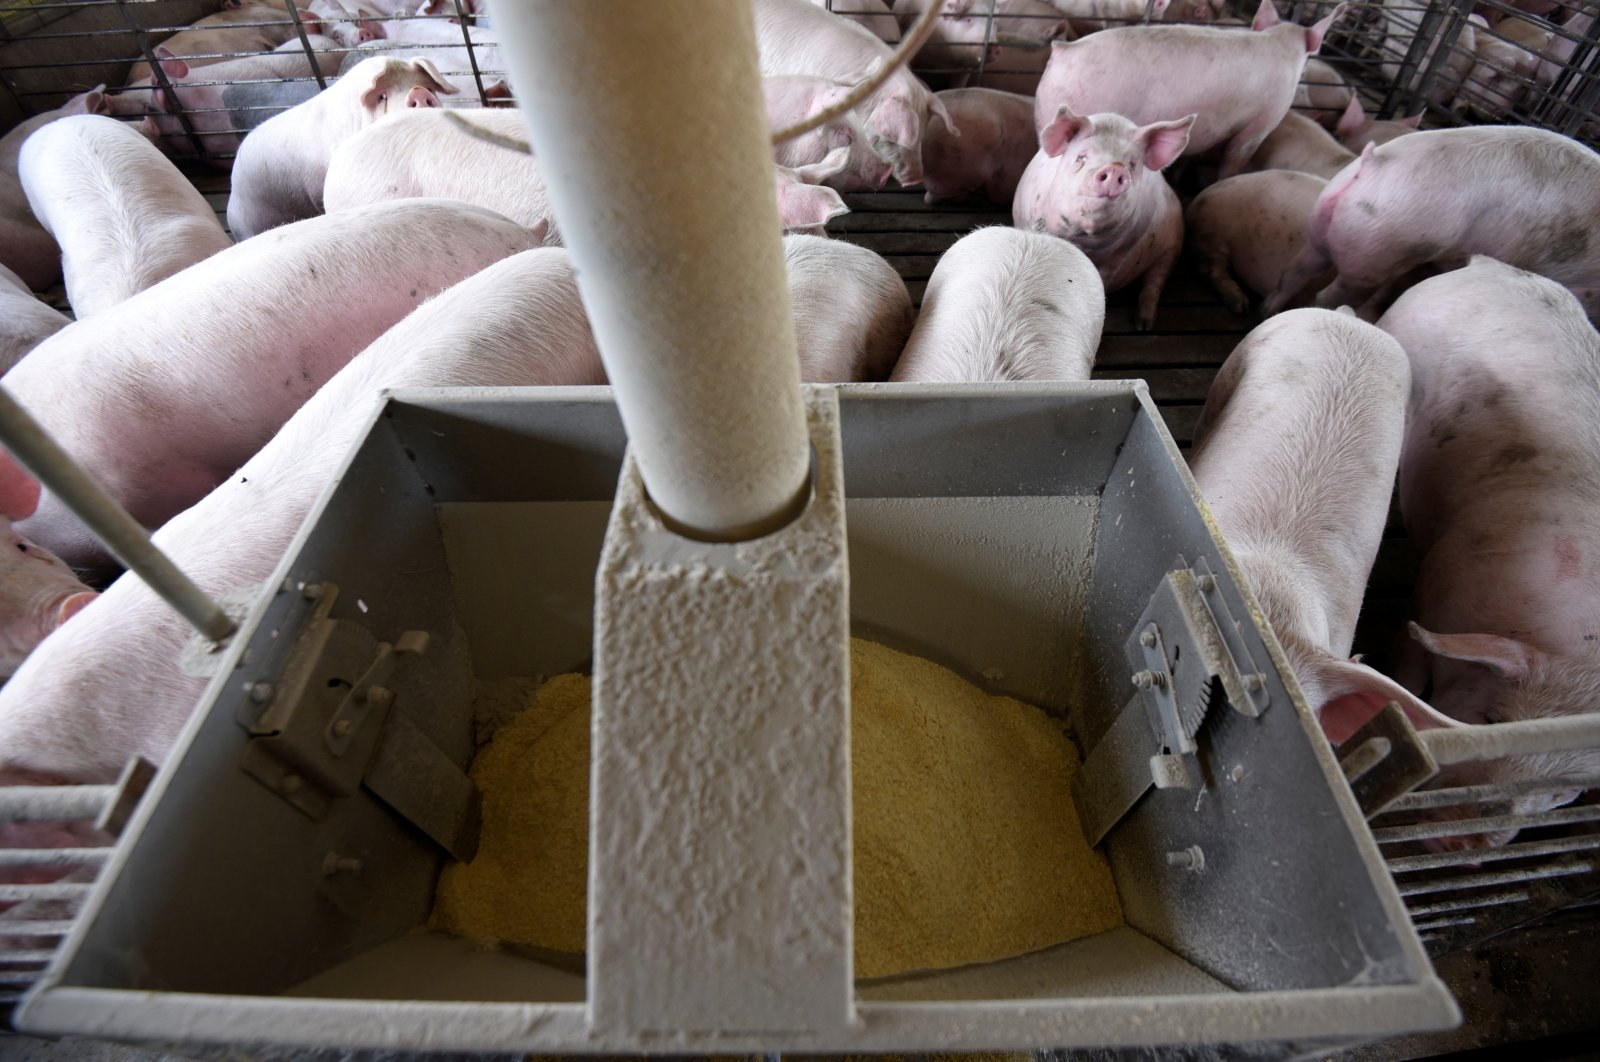 Hog farmer Mike Patterson's diet pig feed, which is part of his efforts to slow how quickly his animals fatten up, a necessity caused by coronavirus disease (COVID-19) related supply chain disruptions, seen in one of his barns in Kenyon, Minnesota, U.S., April 23, 2020. (Reuters Photo)